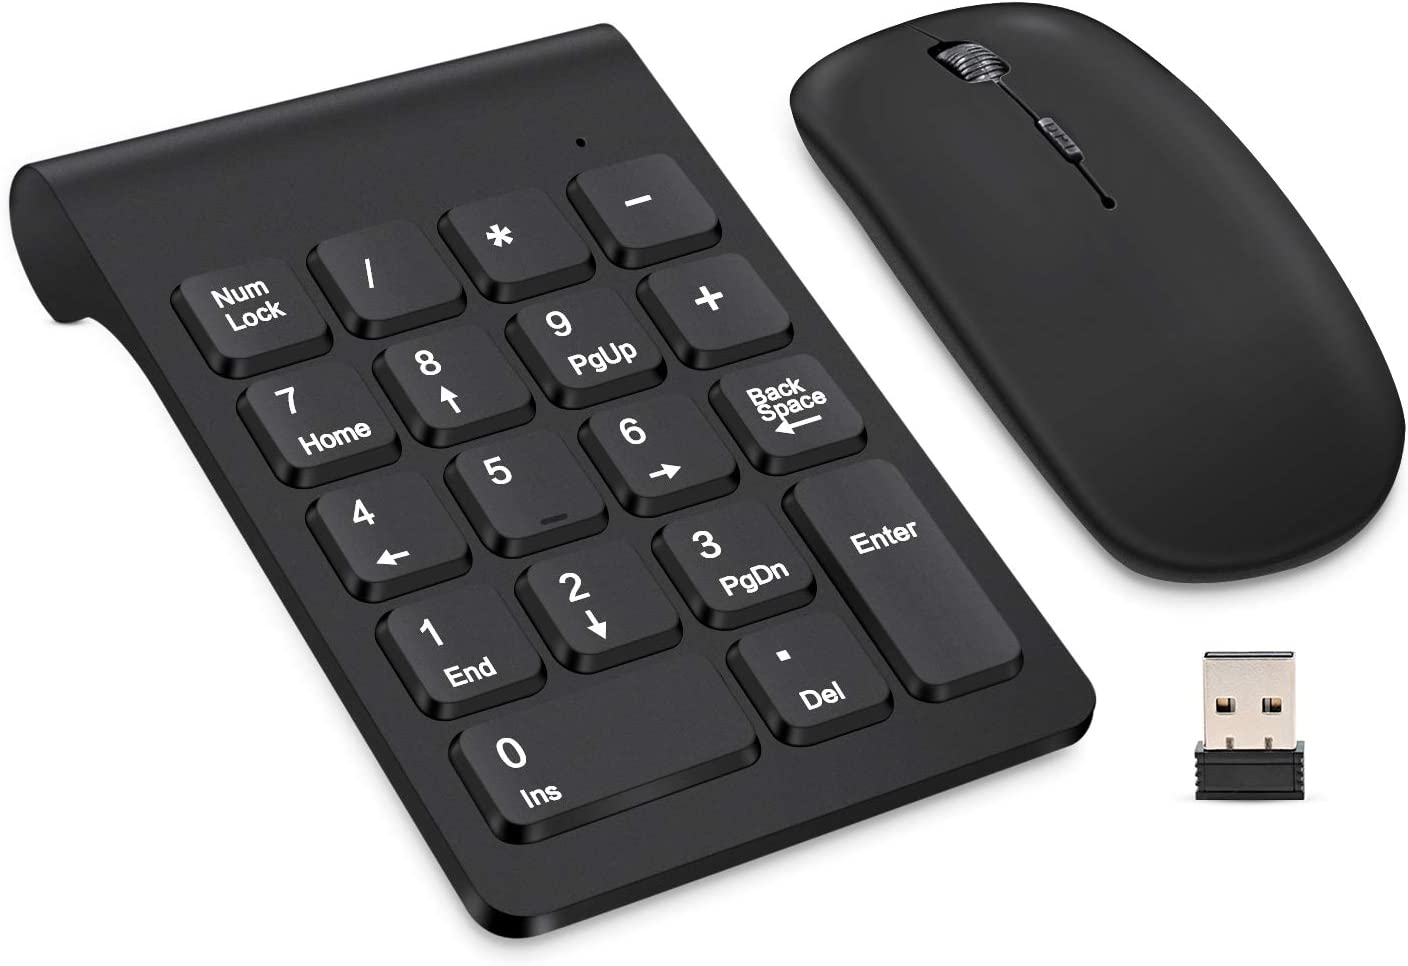 Wireless Numeric Keypad, TRELC Mini 2.4G 18 Keys Number Pad, Portable Silent Financial Accounting Numeric Keypad Keyboard Extensions with Wireless Mouse for Laptop, PC, Desktop, Notebook(Black)